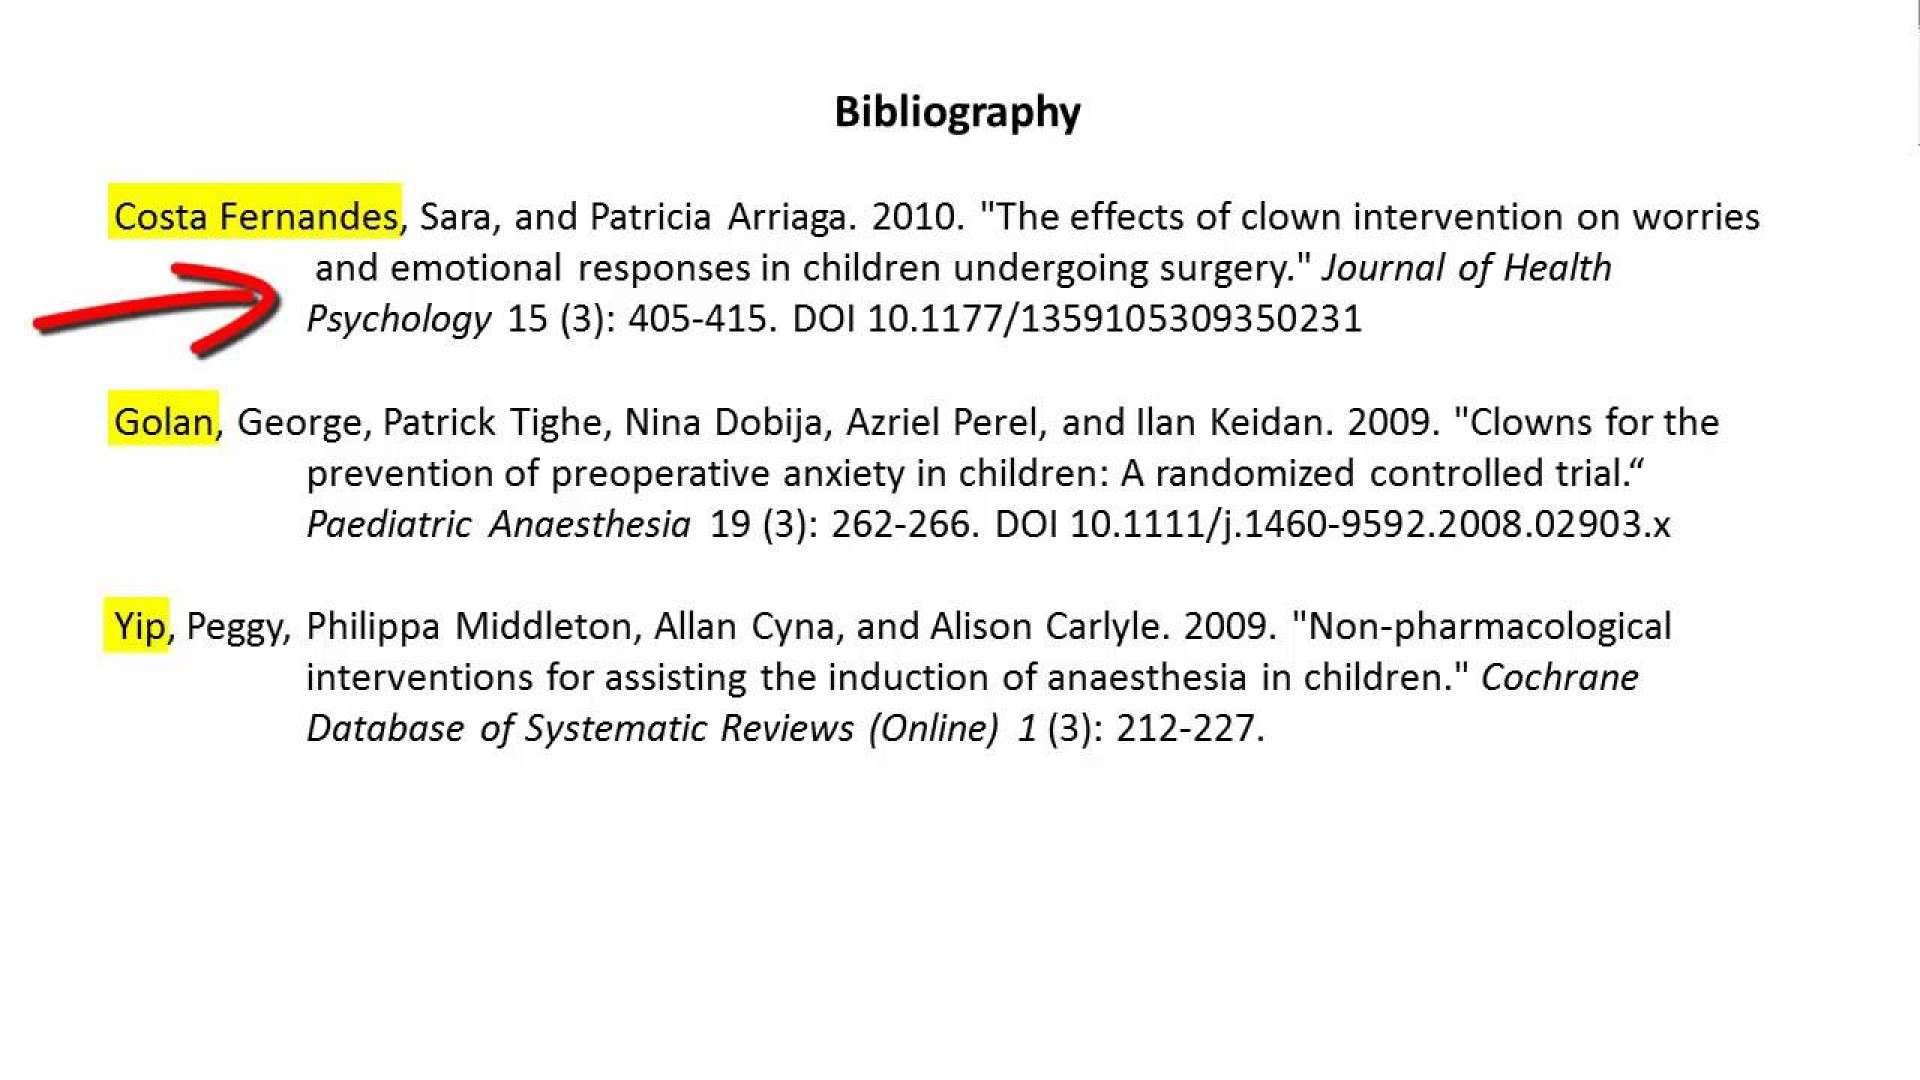 007 Maxresdefault Essay Example How To Cite An Stunning Apa In A Book Style Article Quote Sources Format 1920